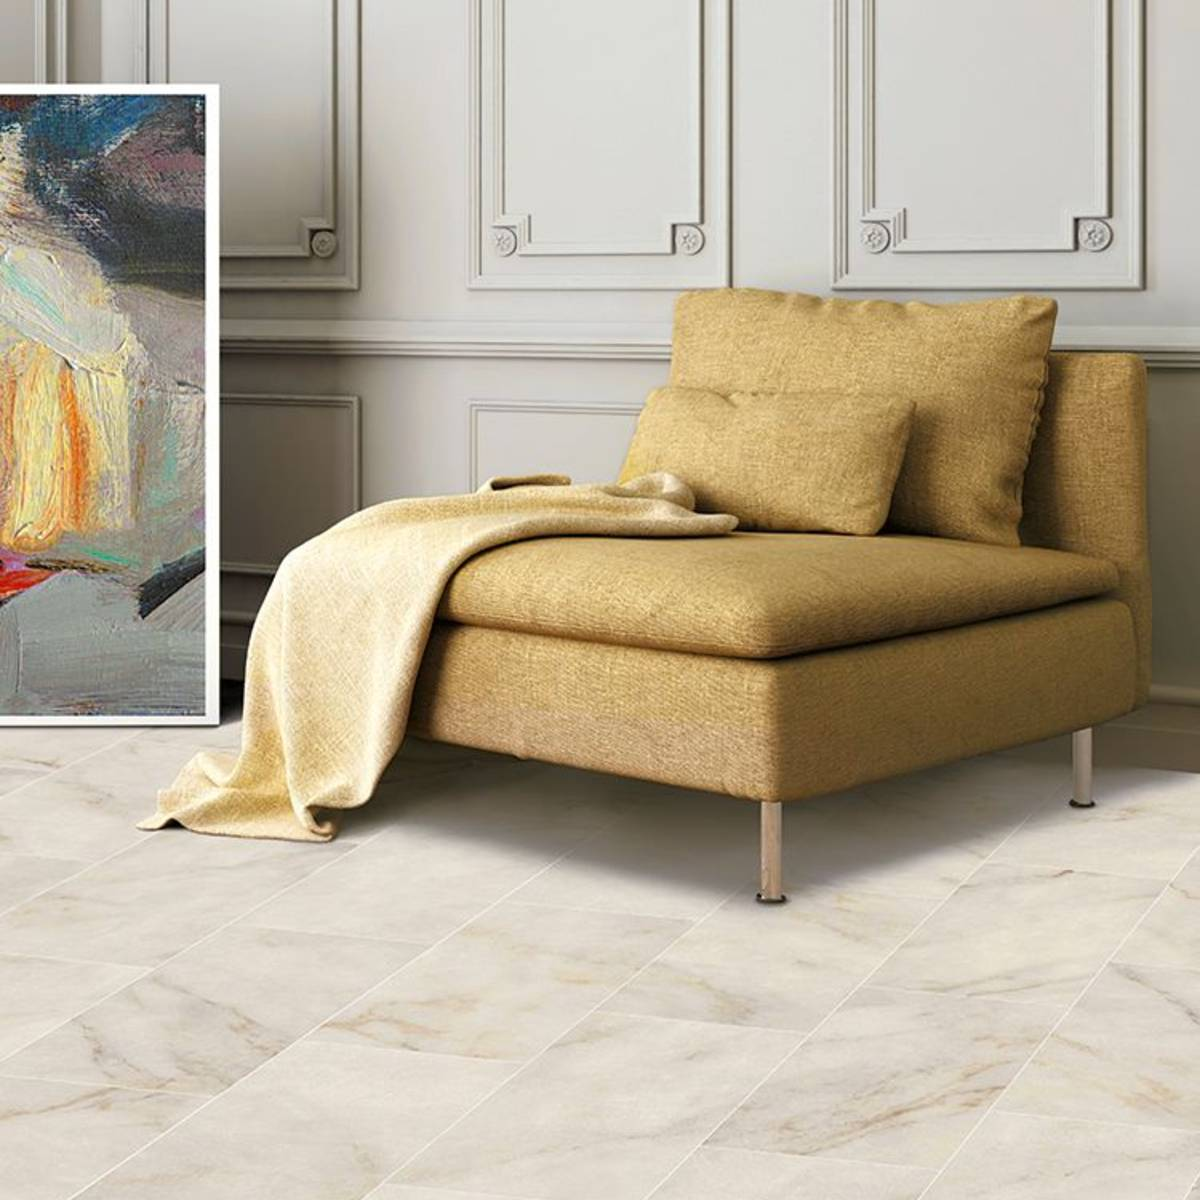 Antique Marble Calacatta Oro Porcelain